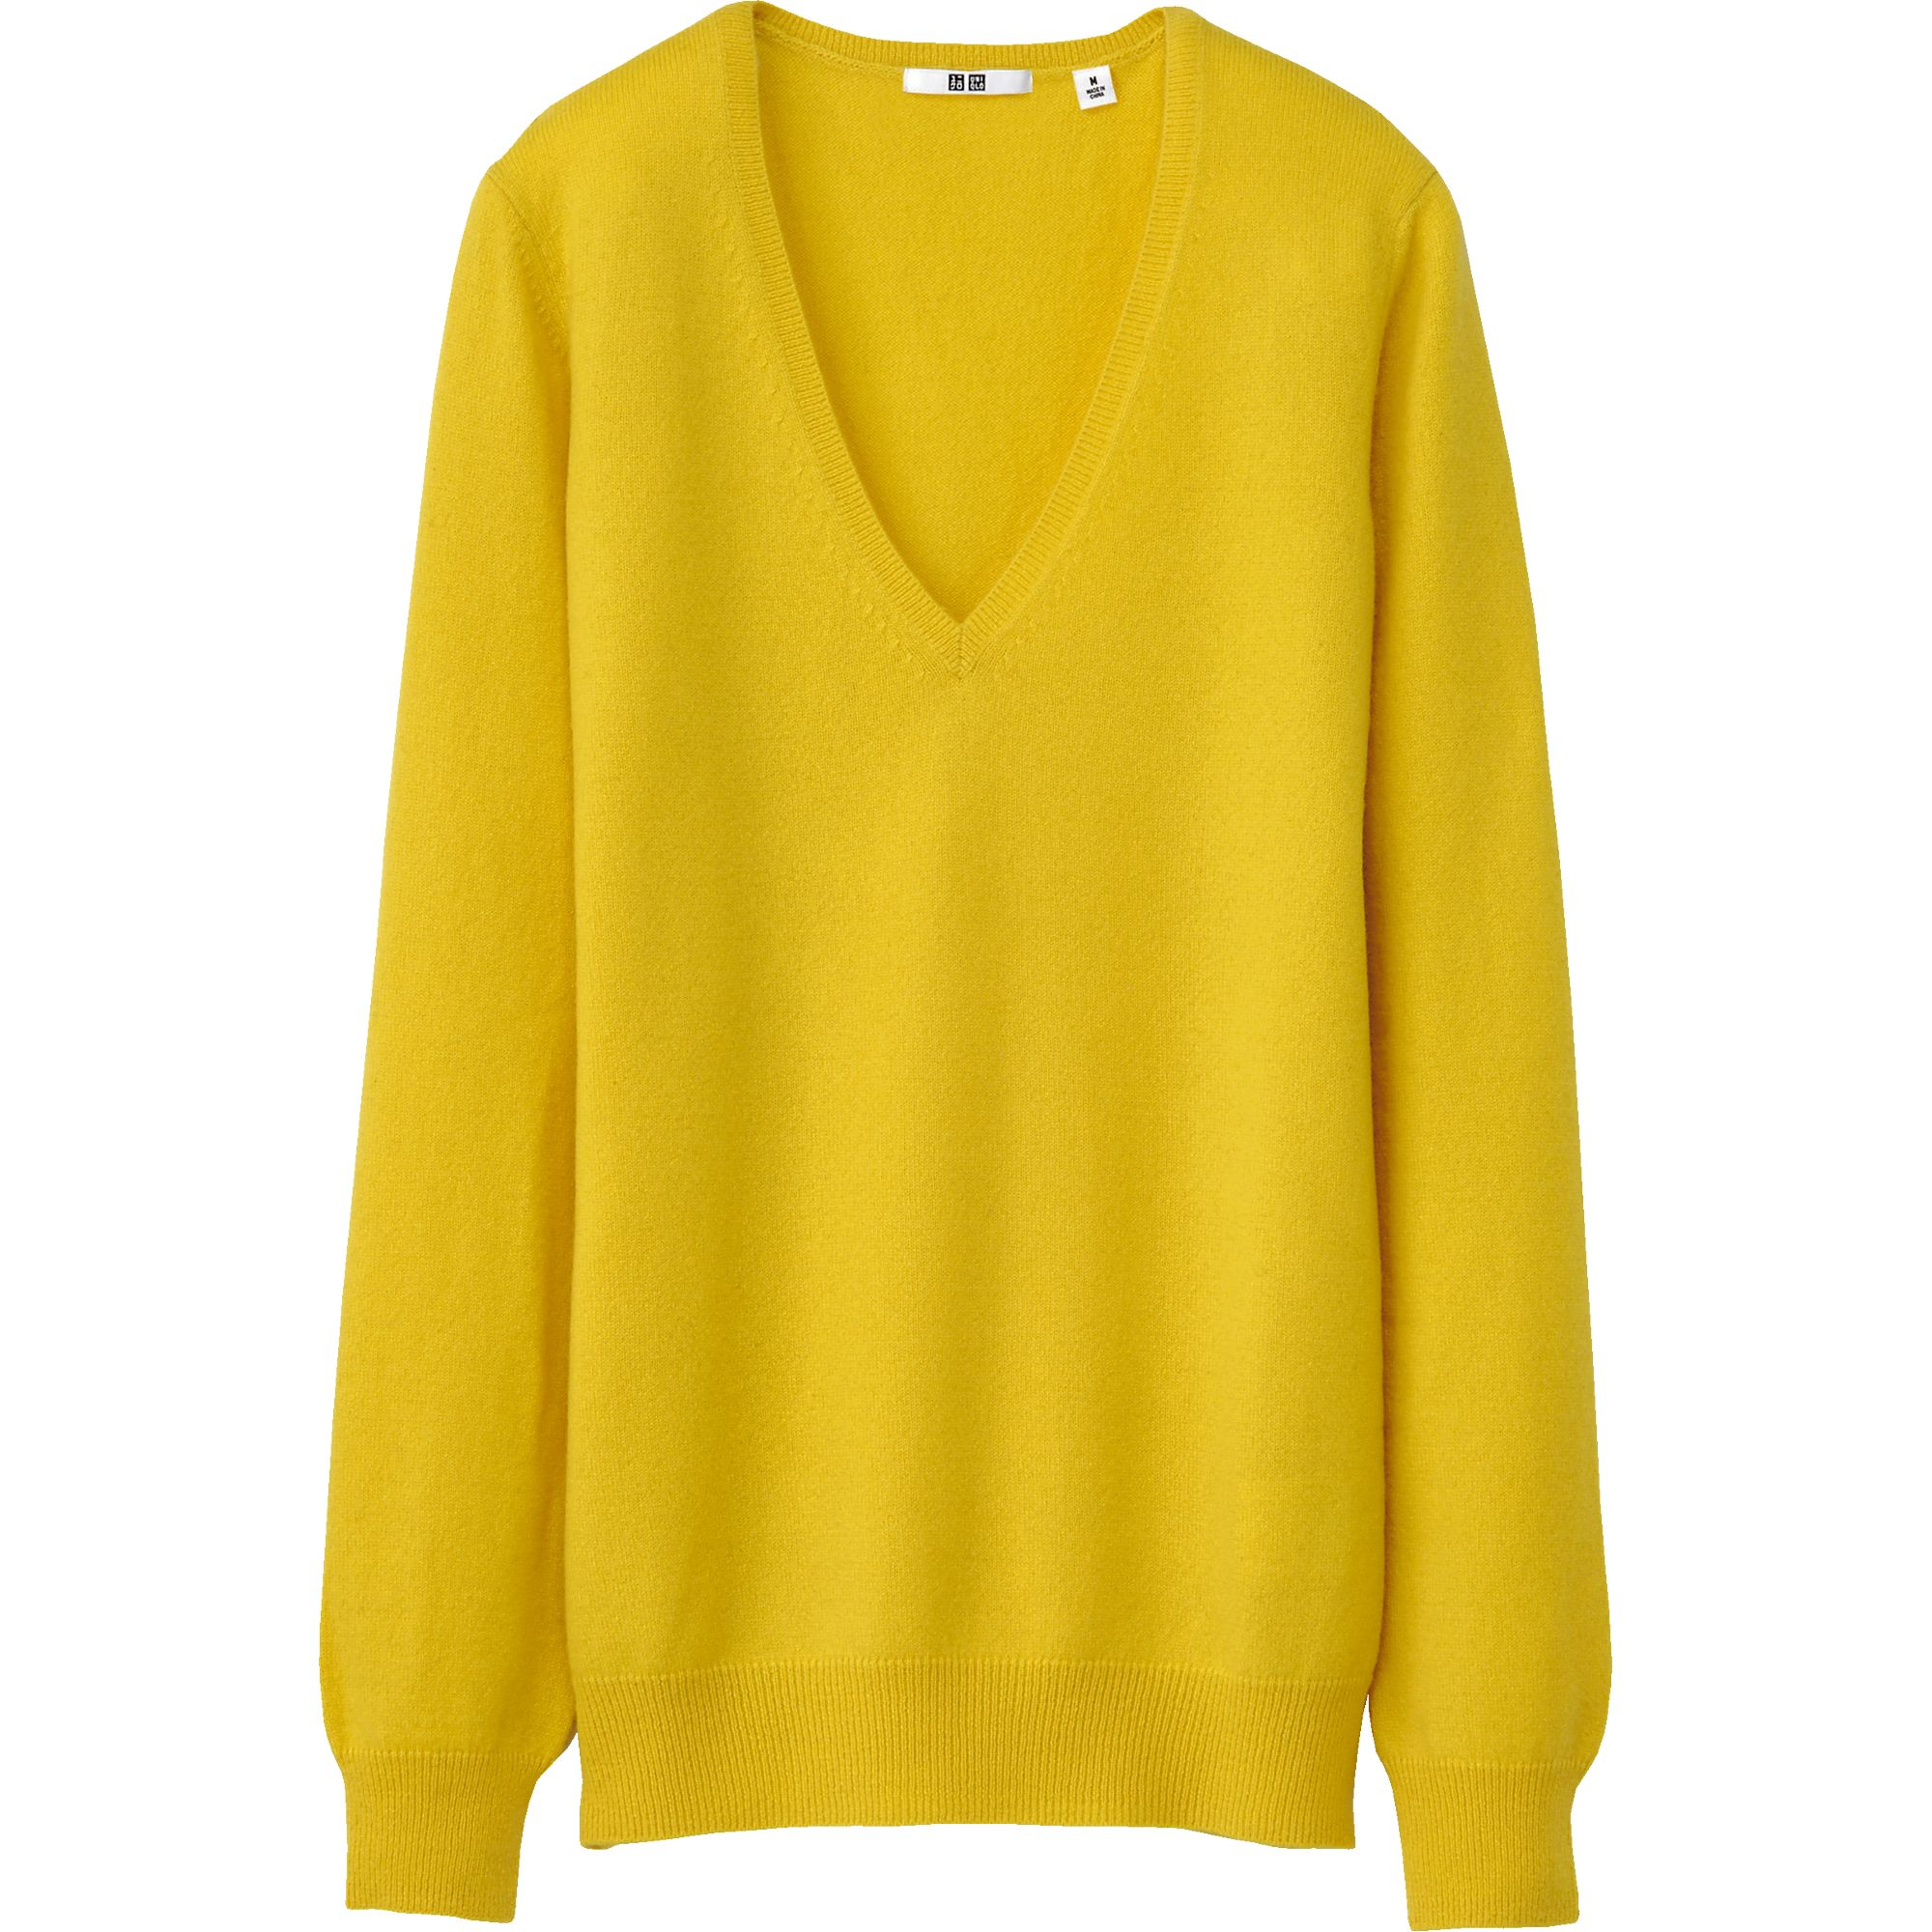 Yellow V Neck Sweater 95